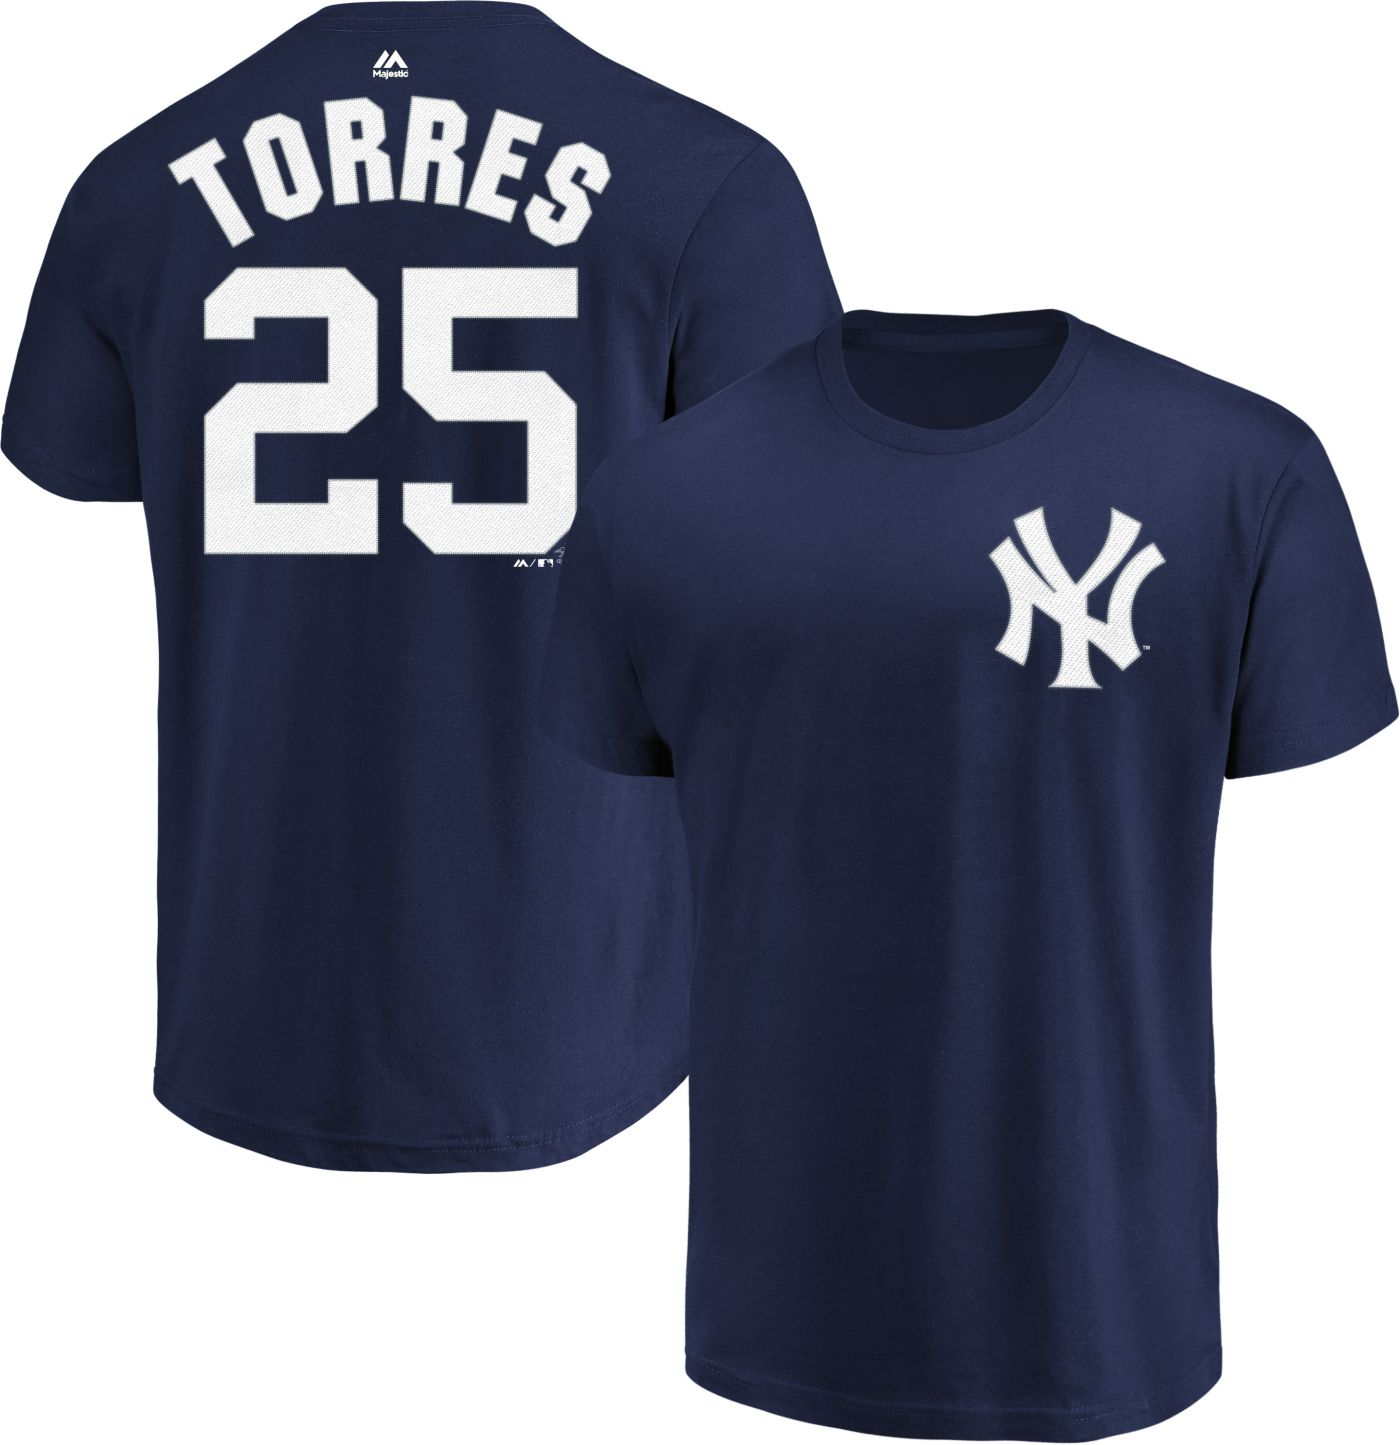 Majestic Men's New York Yankees Gleyber Torres #25 Navy T-Shirt